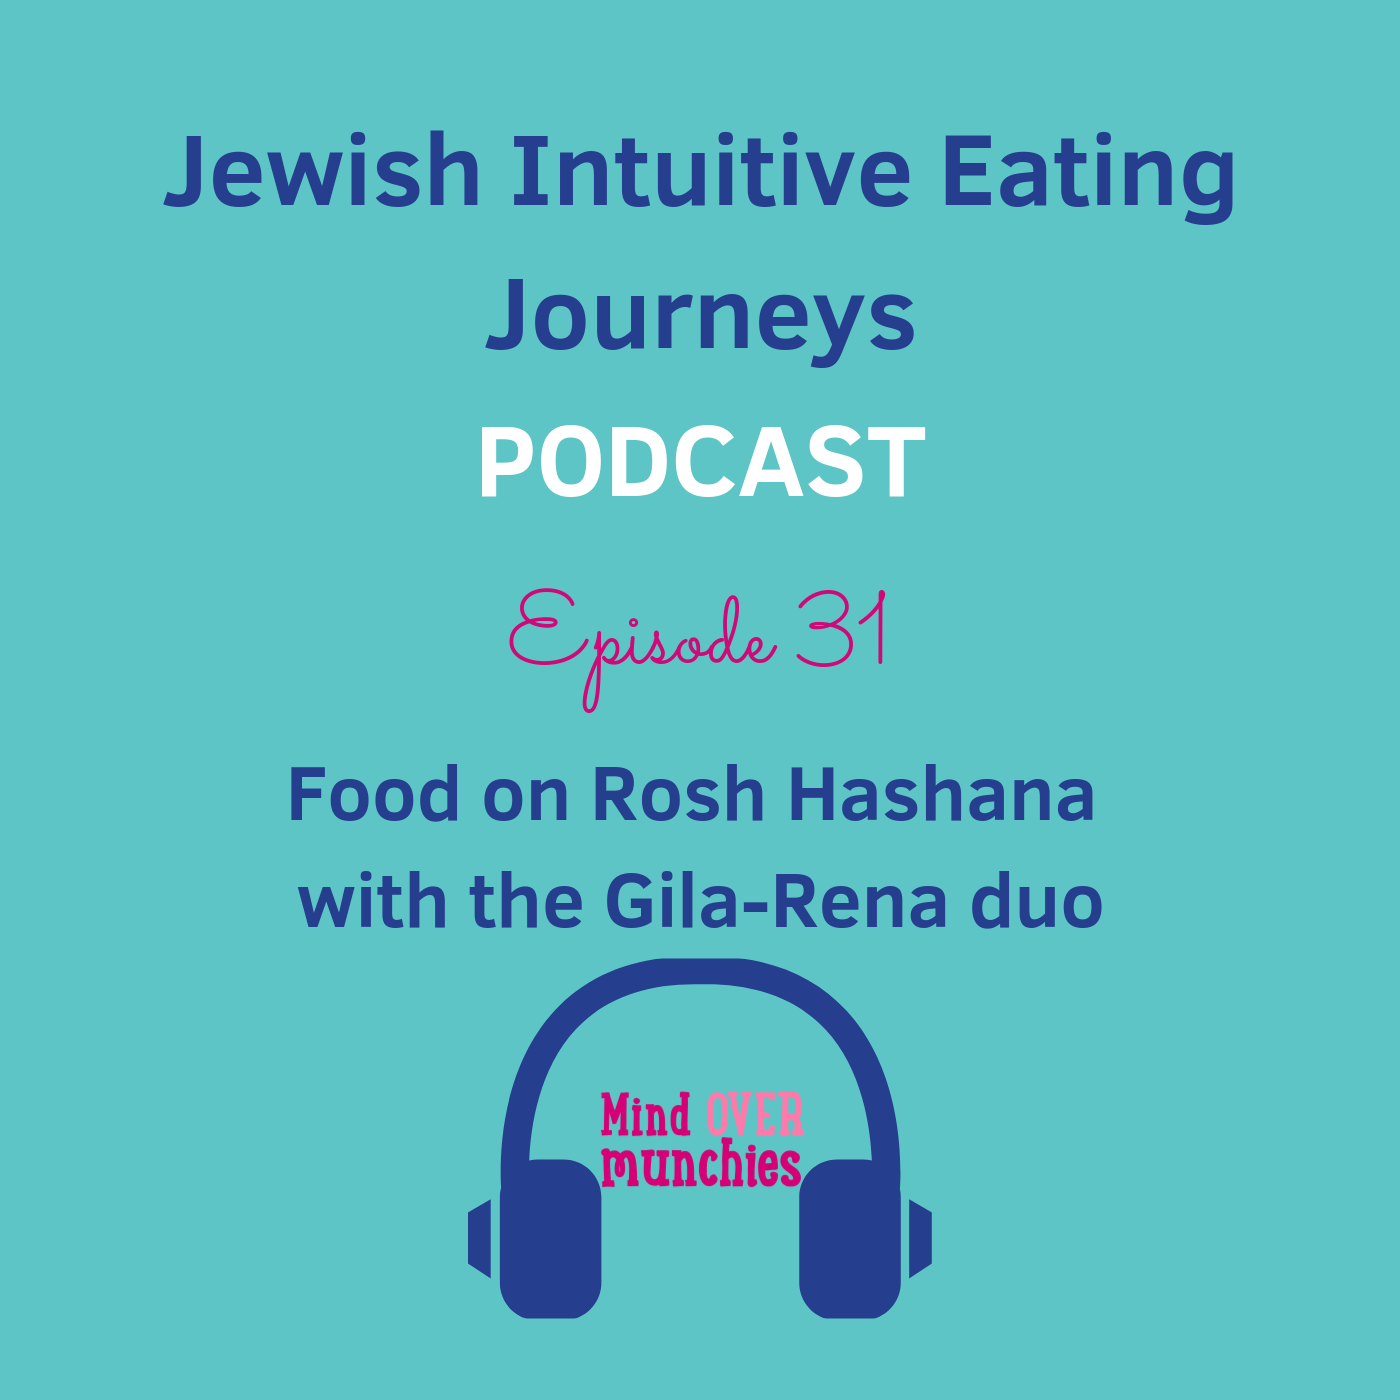 Food-on-Rosh-Hashana-with-the-Gila-Rena-duo